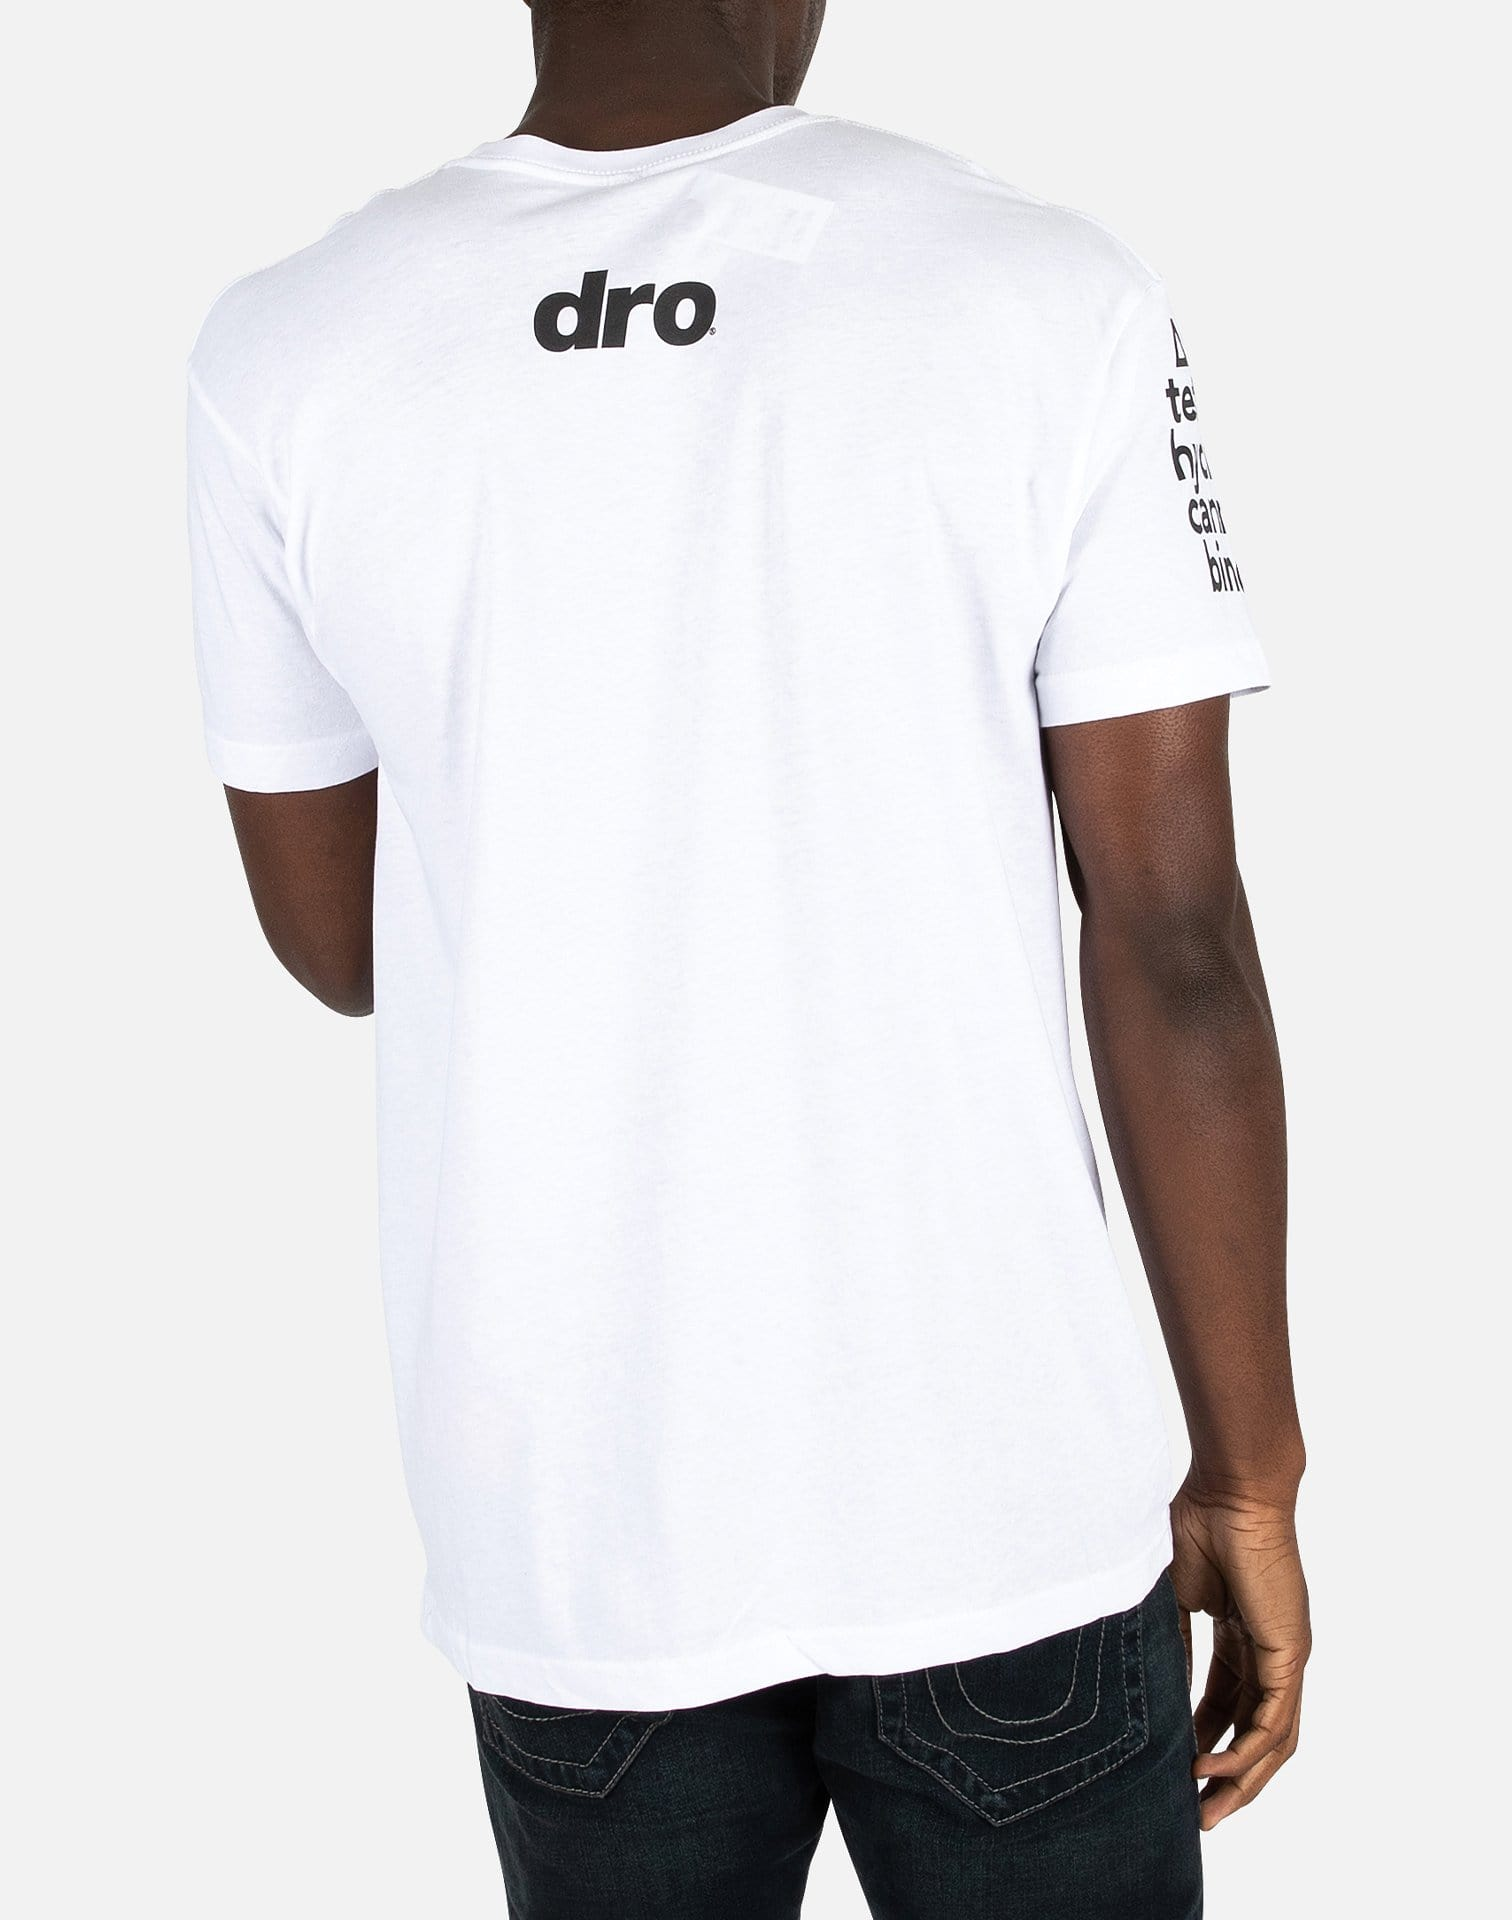 dtlr.com is where to buy